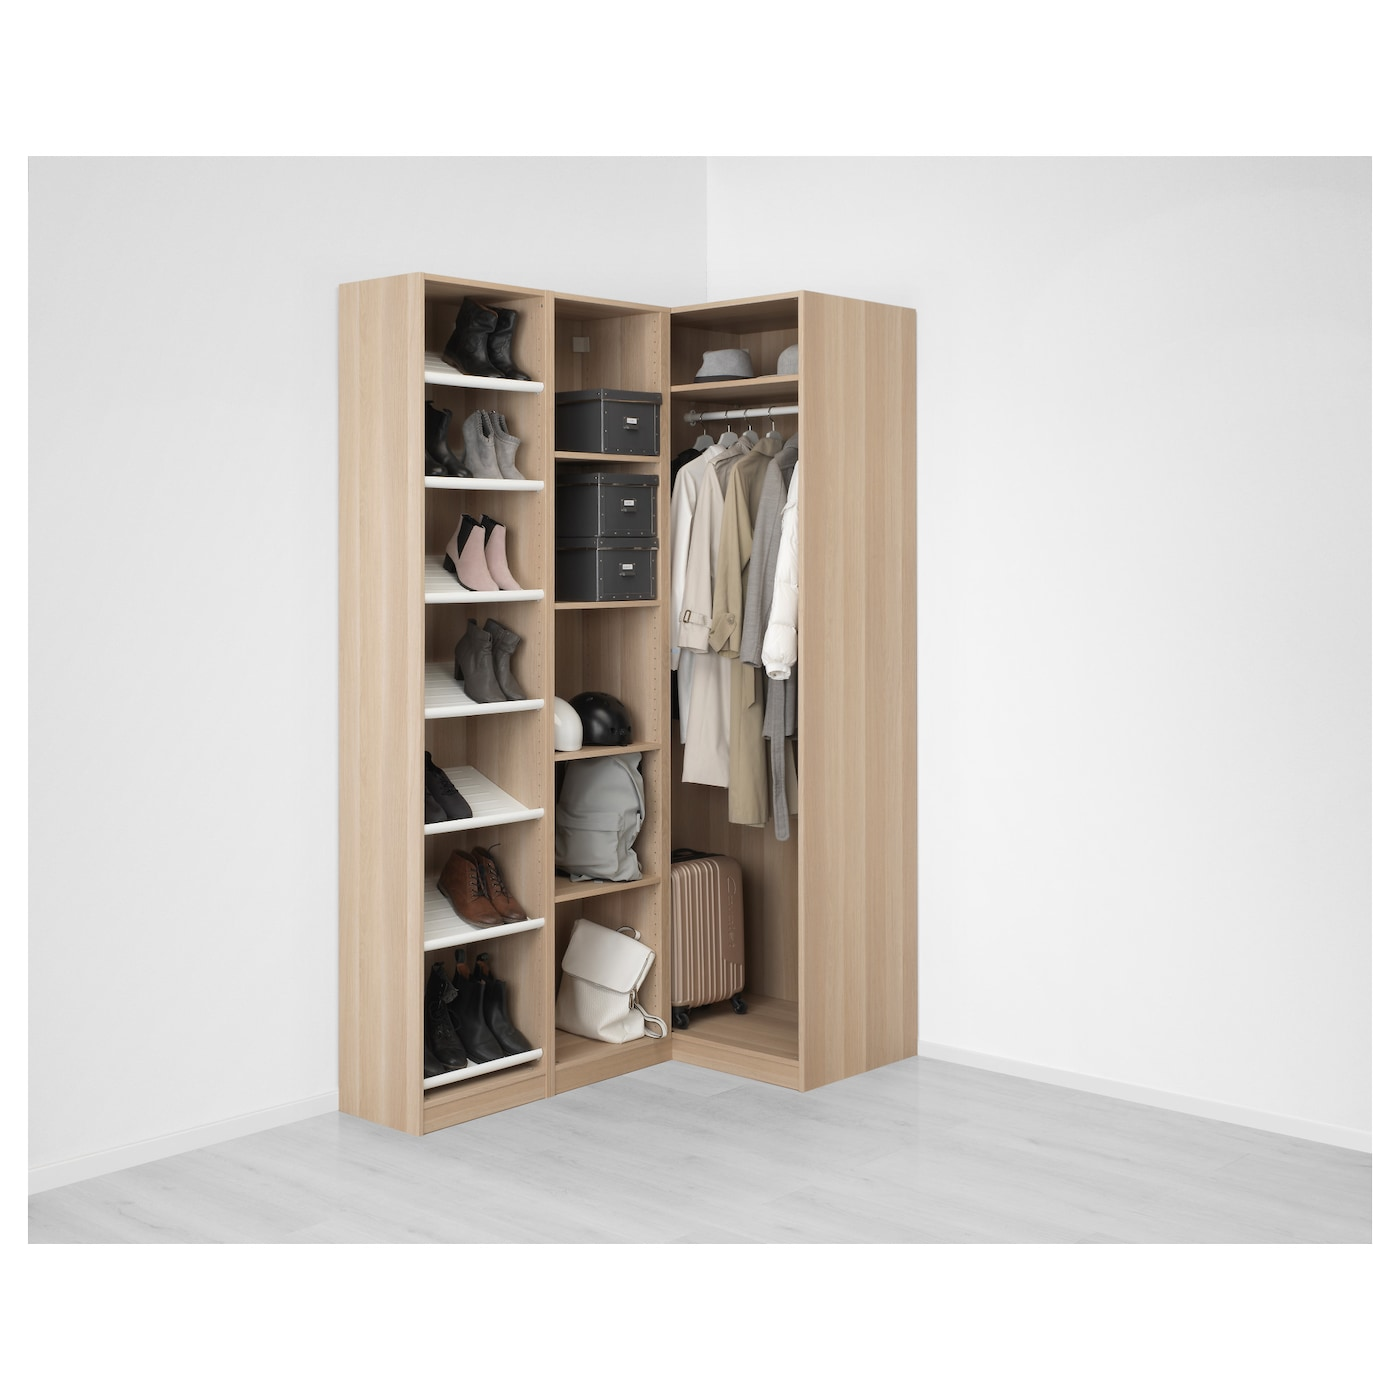 pax corner wardrobe white stained oak effect nexus vikedal 160 88 x 236 cm ikea. Black Bedroom Furniture Sets. Home Design Ideas